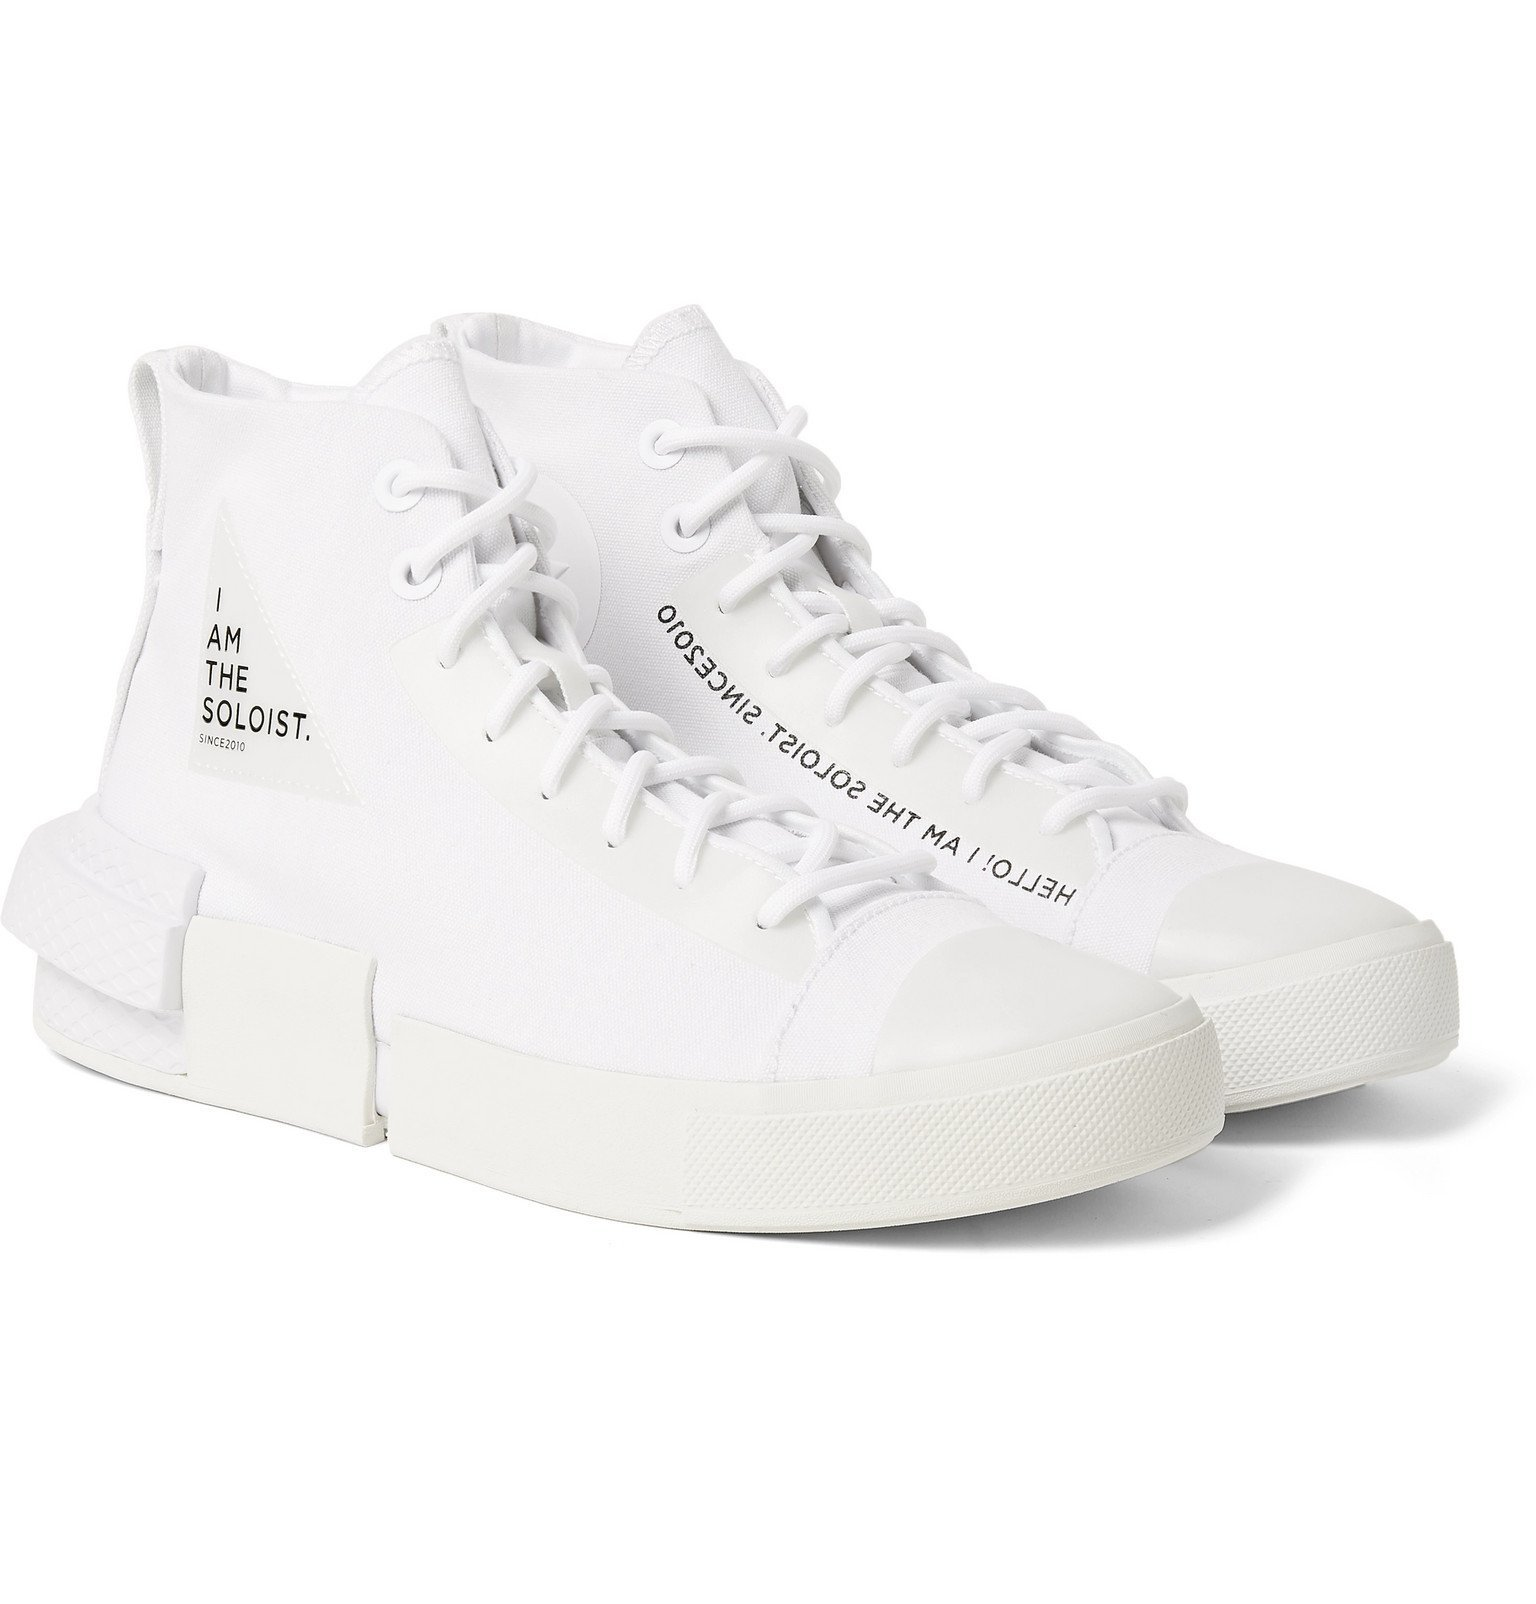 Photo: Converse - TheSoloist All Star Disrupt CX Canvas High-Top Sneakers - White